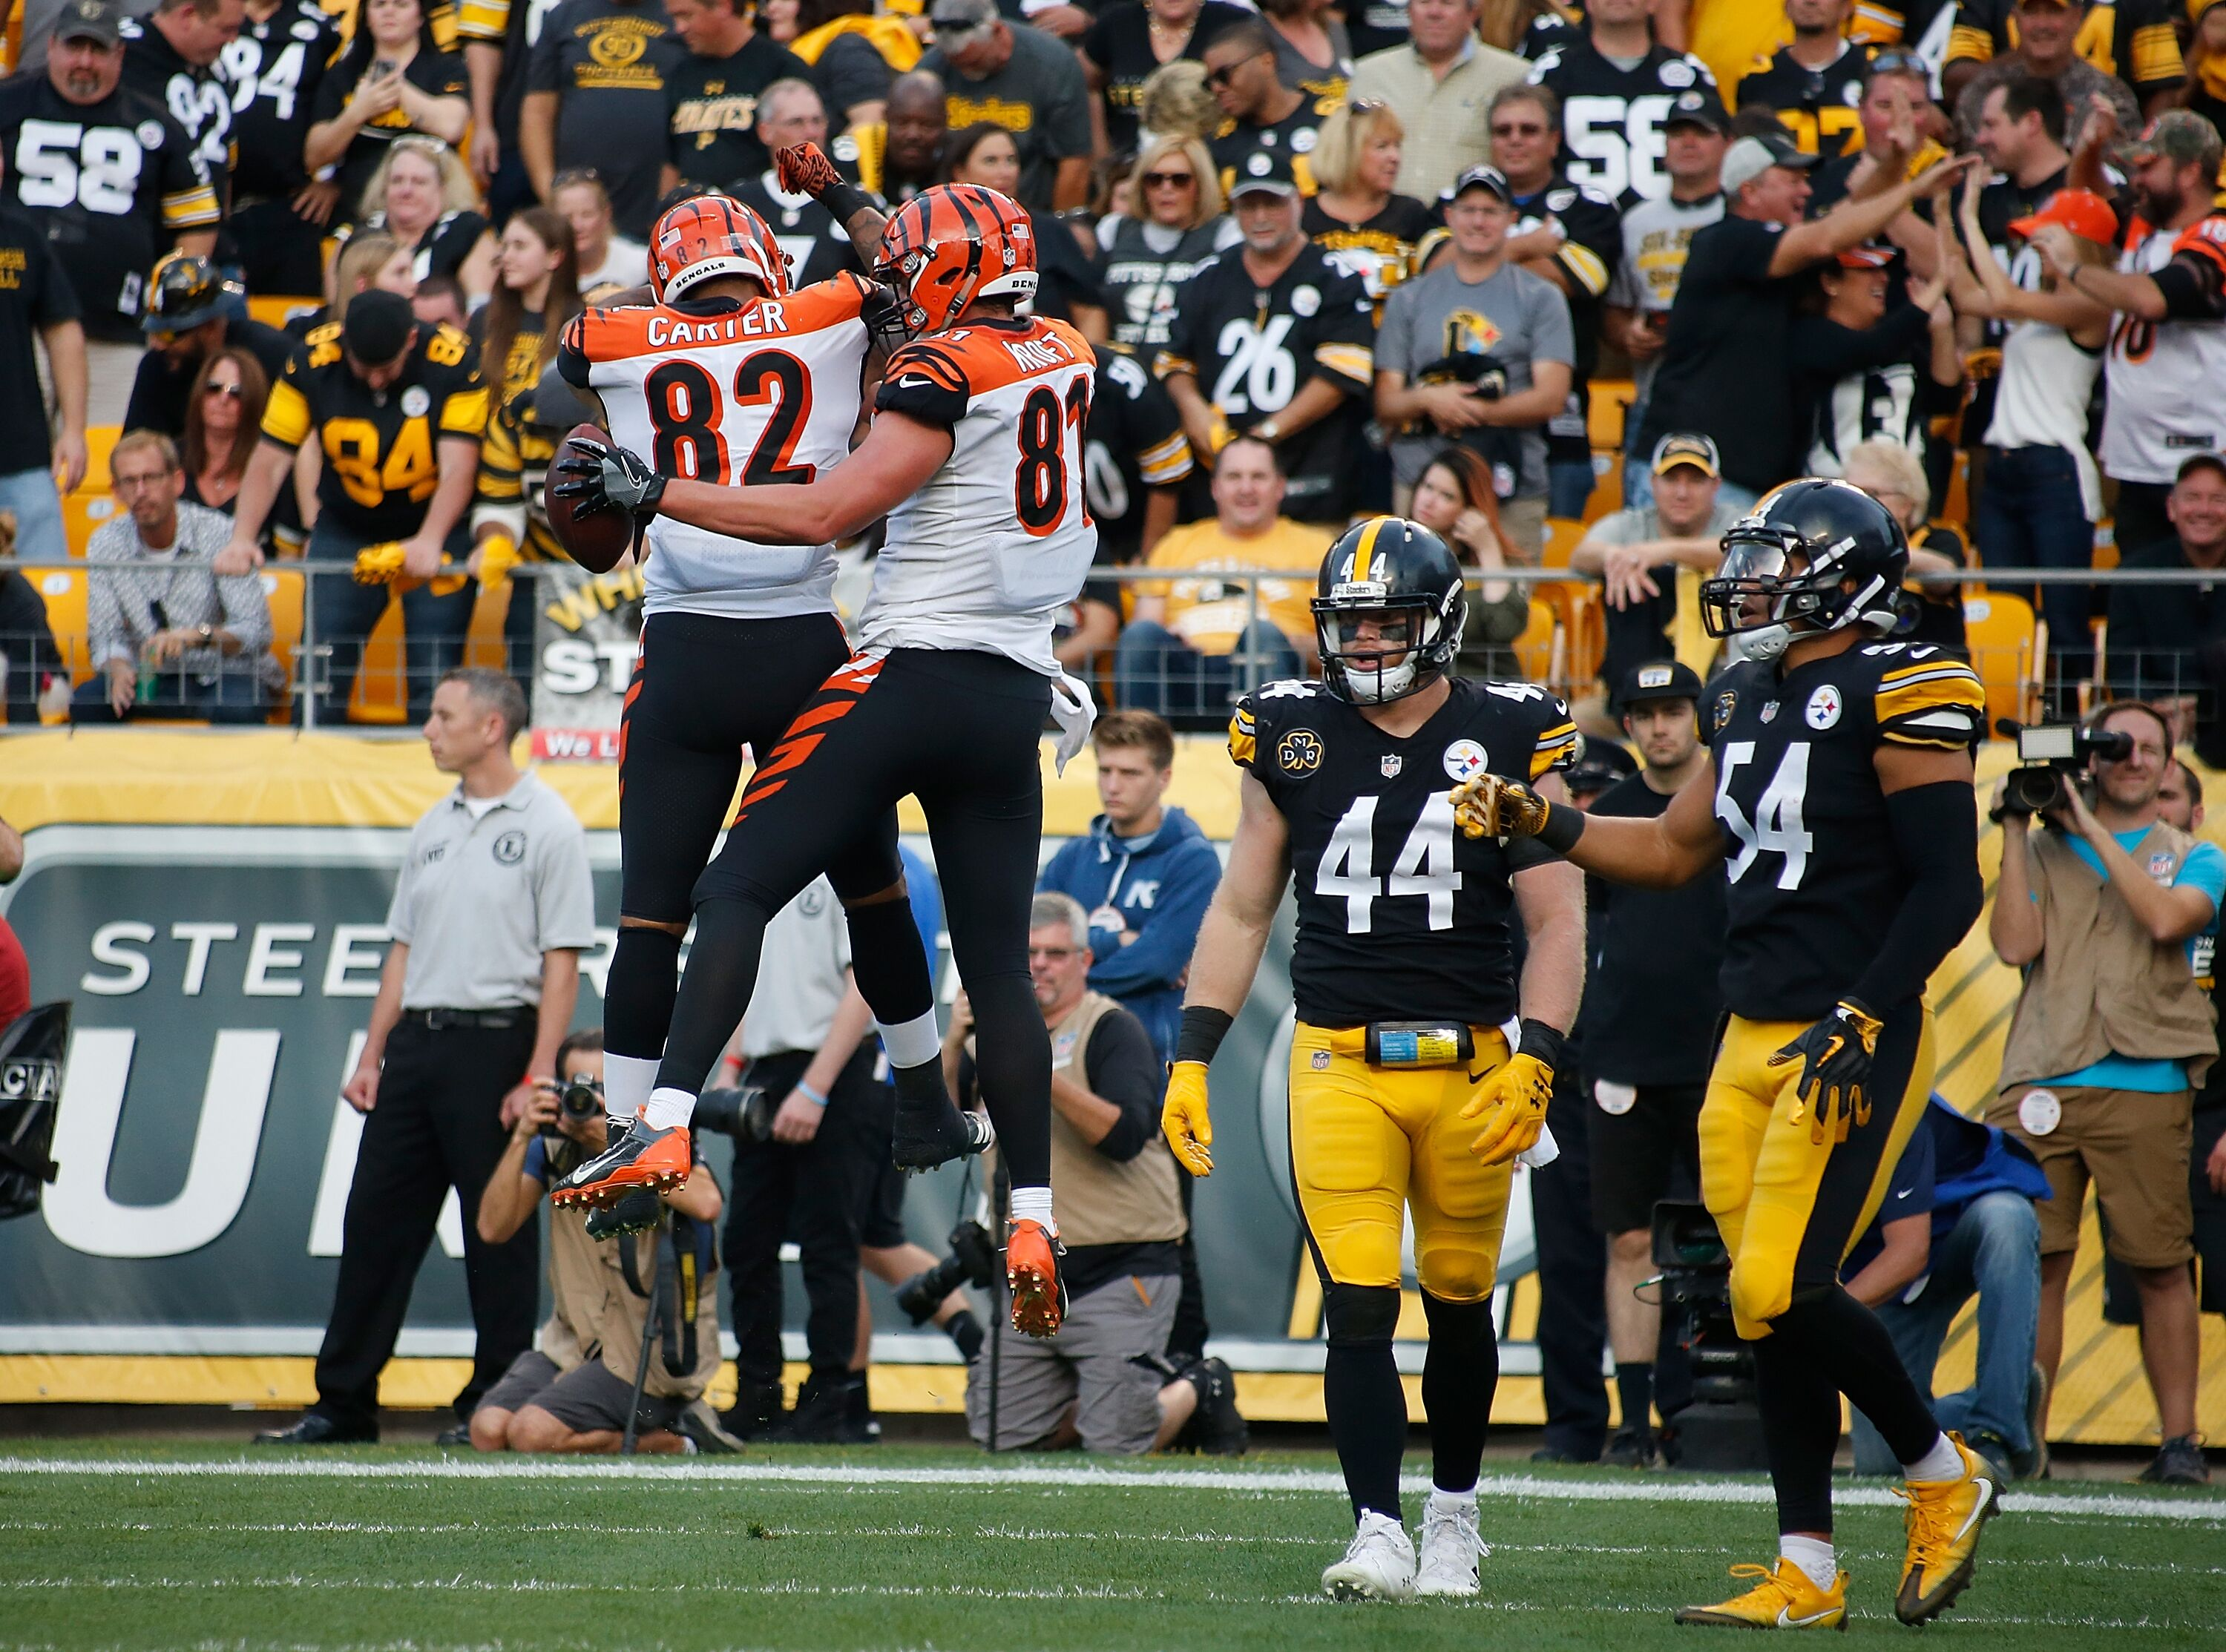 865161794-cincinnati-bengals-v-pittsburgh-steelers.jpg